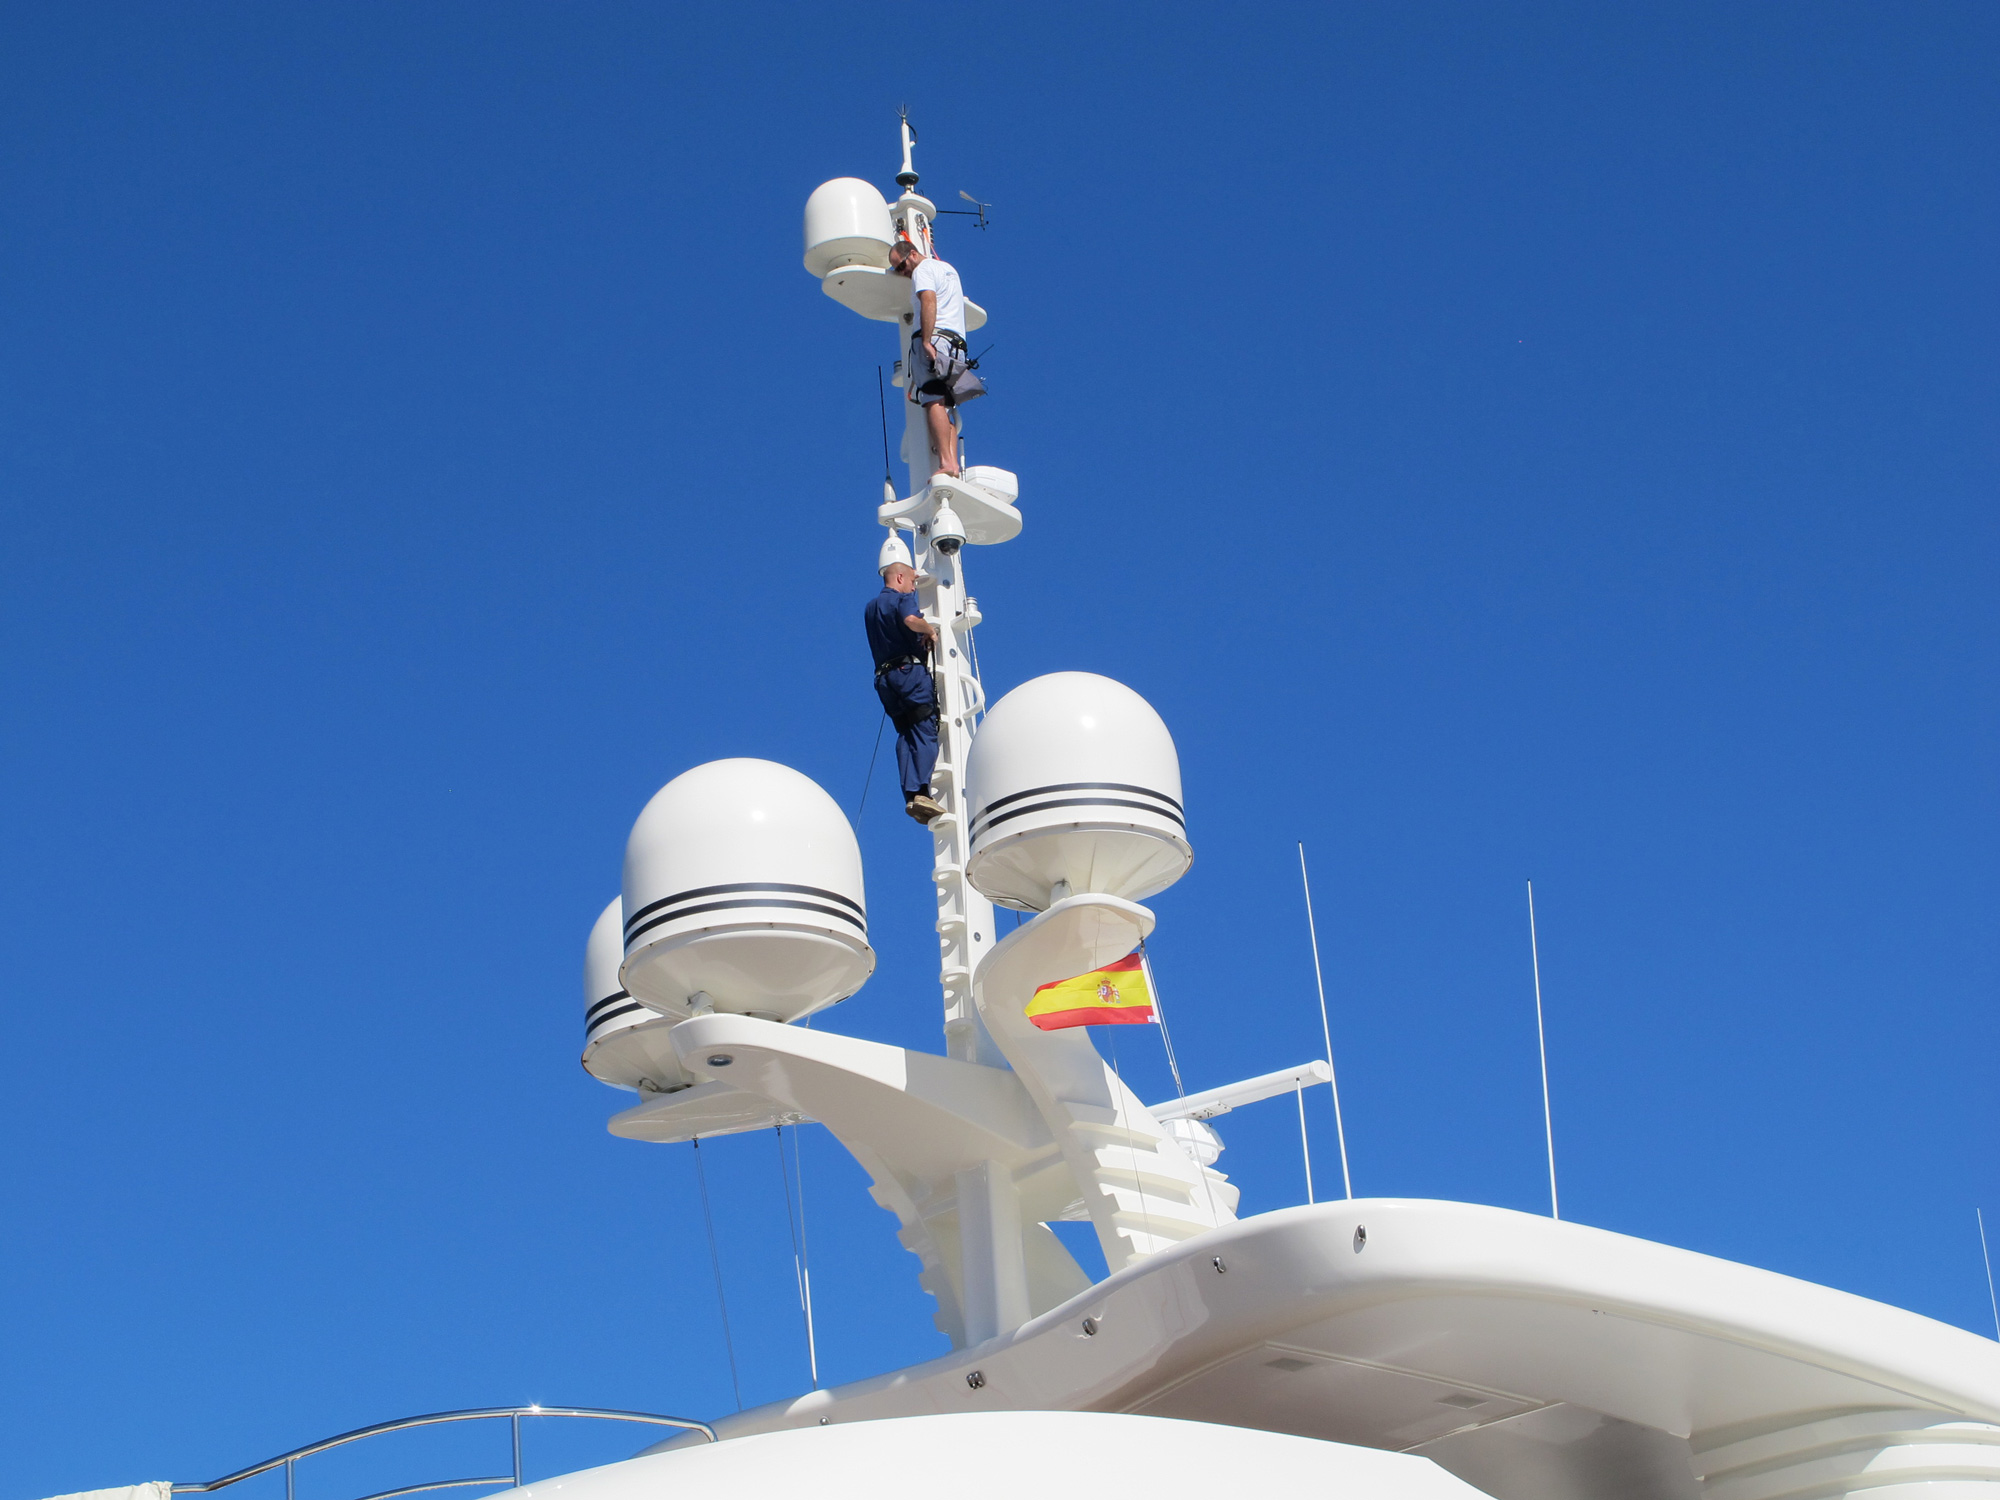 Two men working on the satellites of a superyacht on a beautiful blue sky day.